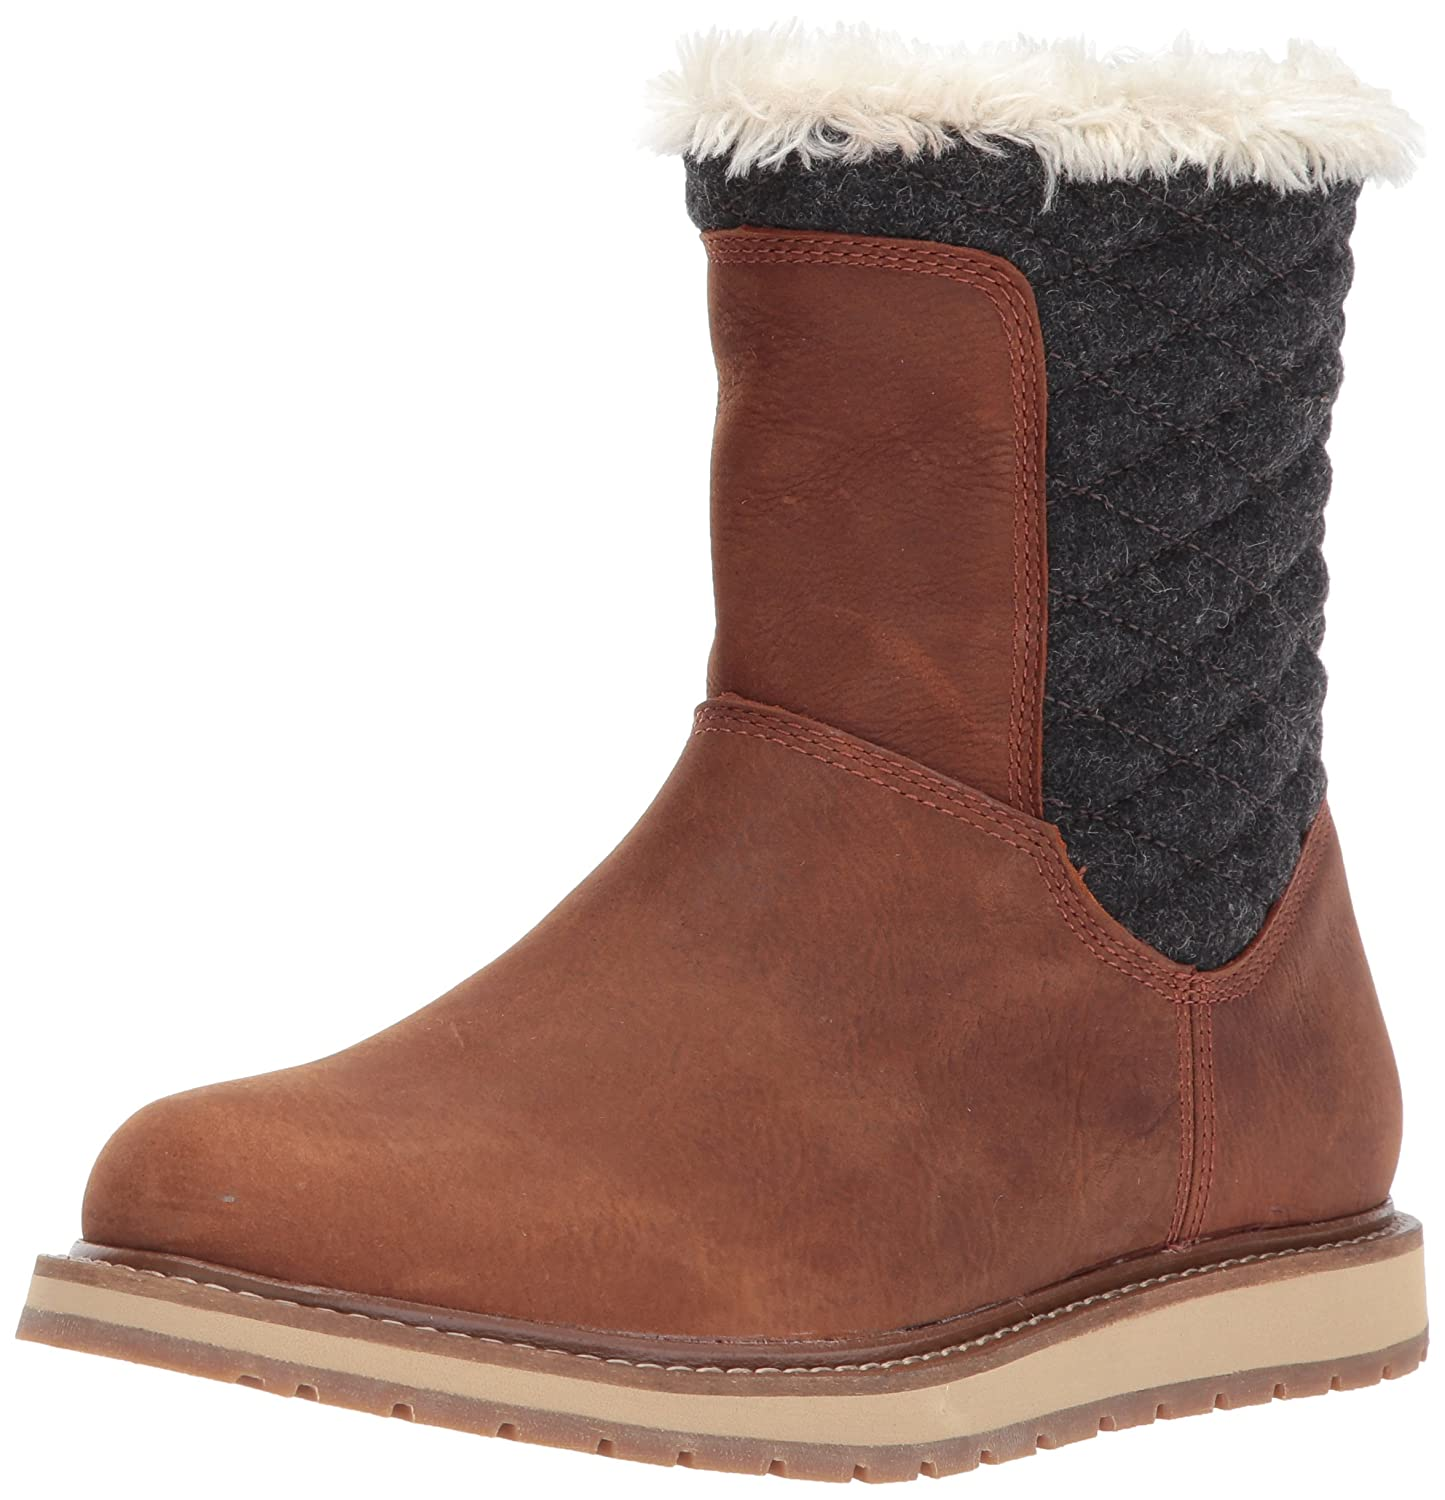 Helly Hansen Women's Seraphina Winter Boot B01N2AUFYK 6.5 B(M) US|Barley/Coffee Bean/Angora